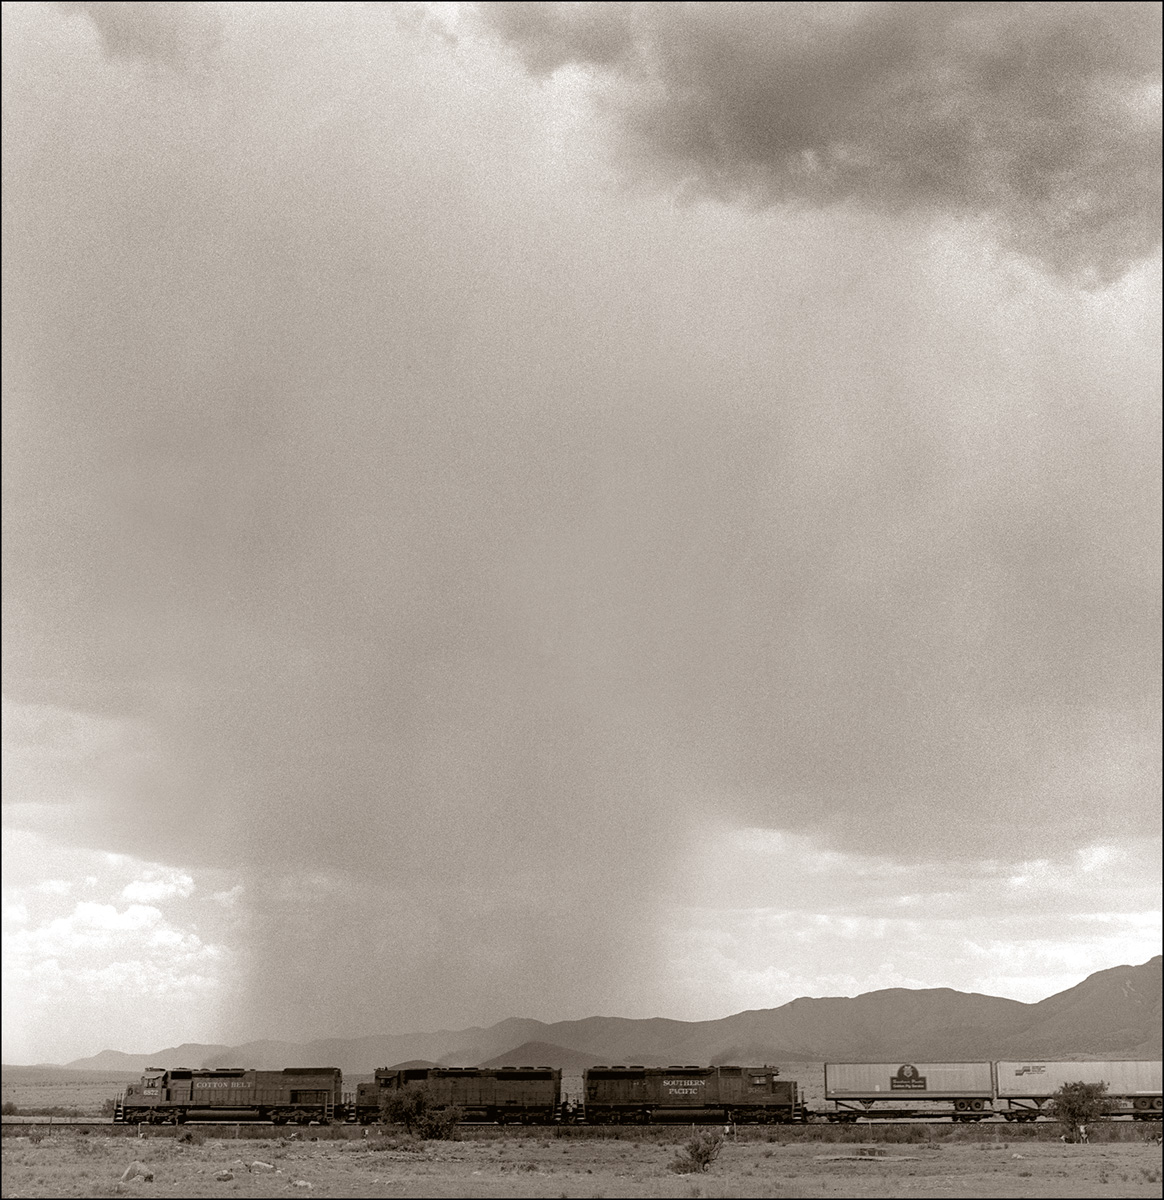 © James-H-Evans-Train and Isolated Rain